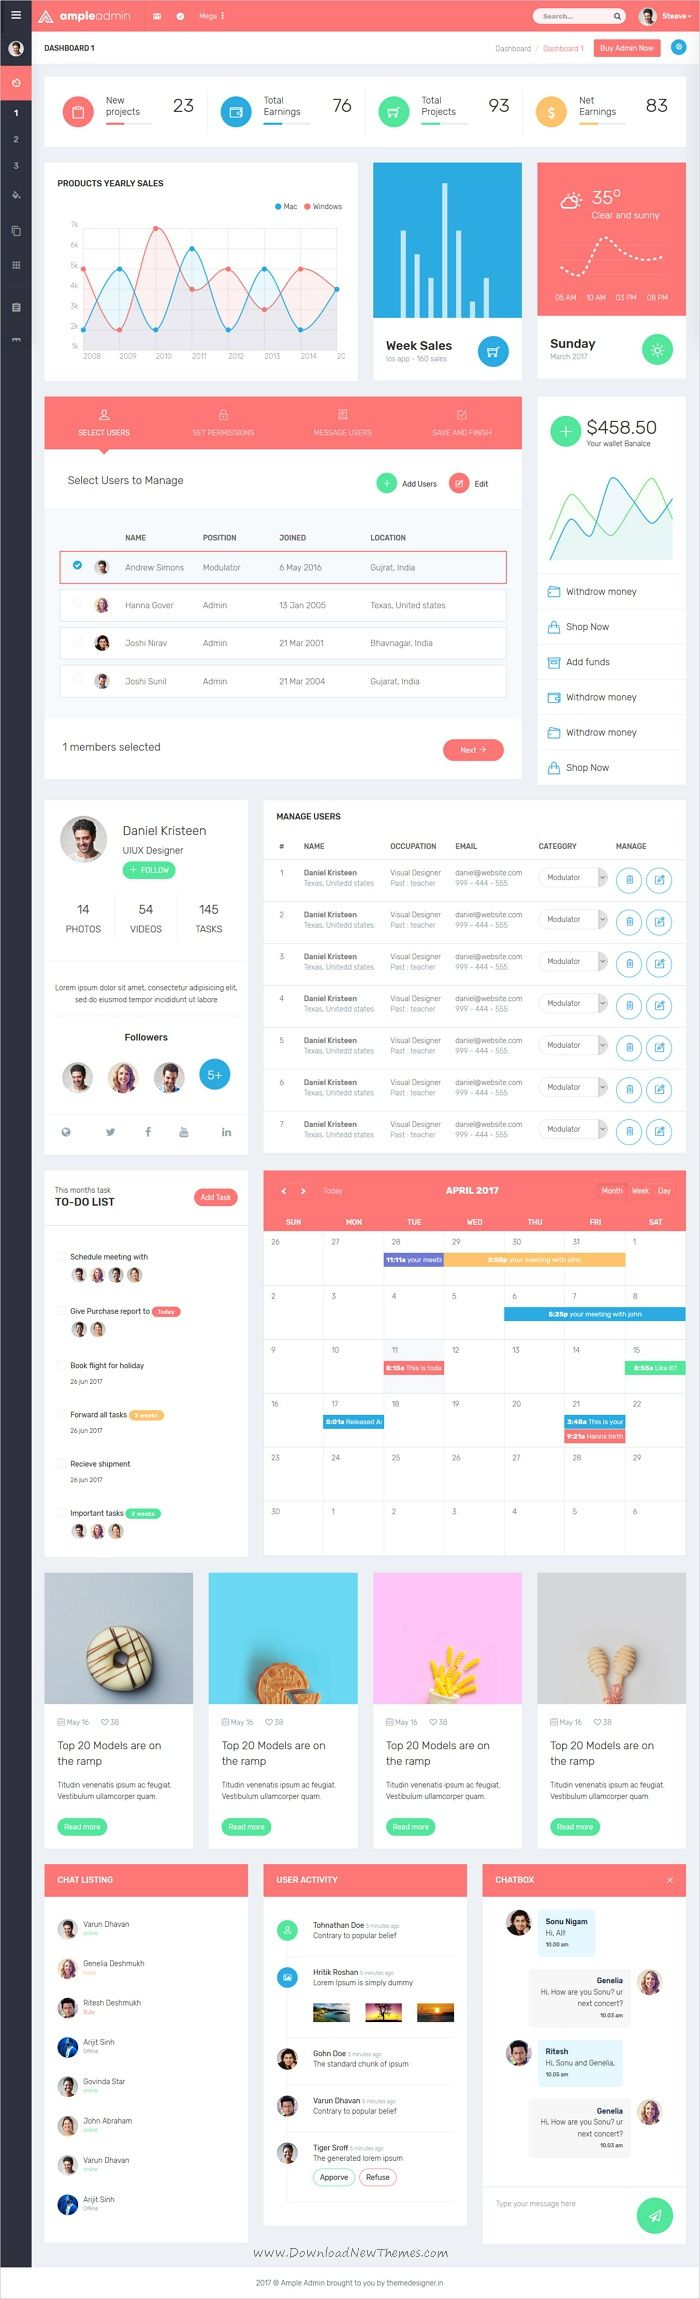 Ample Admin is a popular open source WebApp template for #admin #dashboards and control panels based on CSS, Bootstrap framework with 7 unique homepage layouts download now➩ https://wrapbootstrap.com/theme/ample-admin-dashboard-template-WB0RDB1MP?ref=datasata